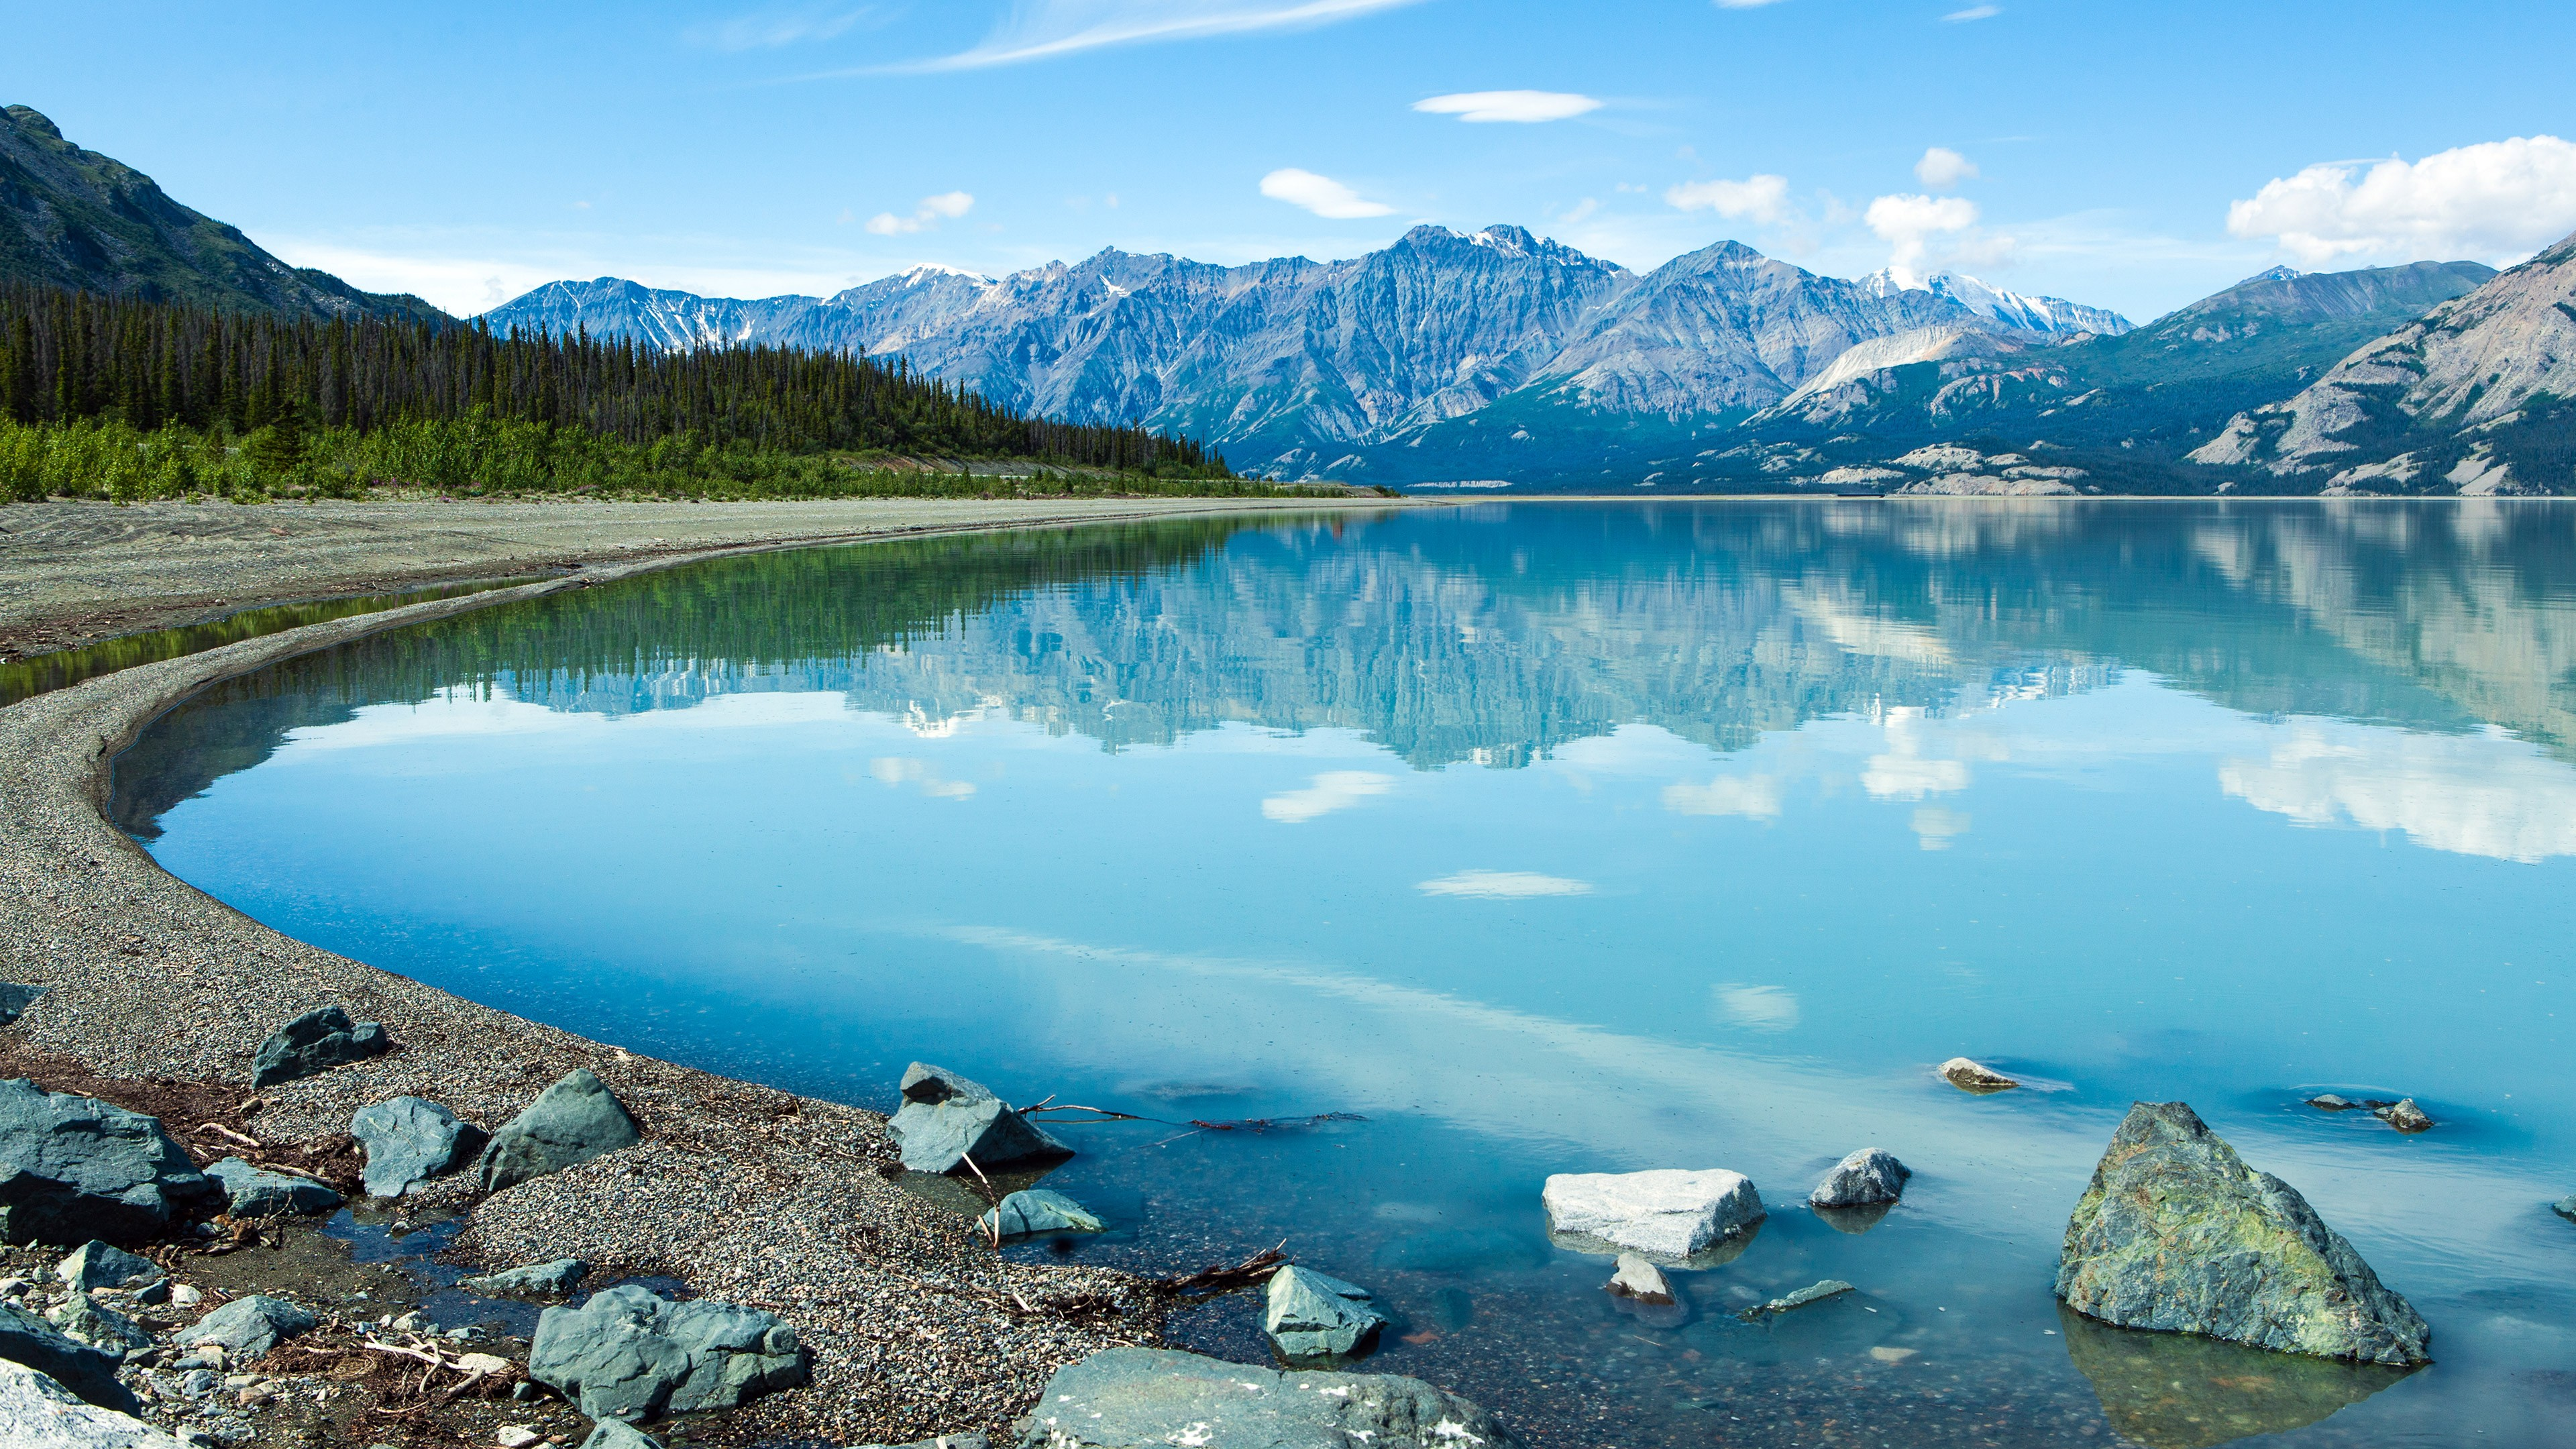 Must see Wallpaper Mac Landscape - canada-3840x2160-5k-4k-wallpaper-kluane-lake-yukon-landscape-mountain-12505  You Should Have_246977.jpg